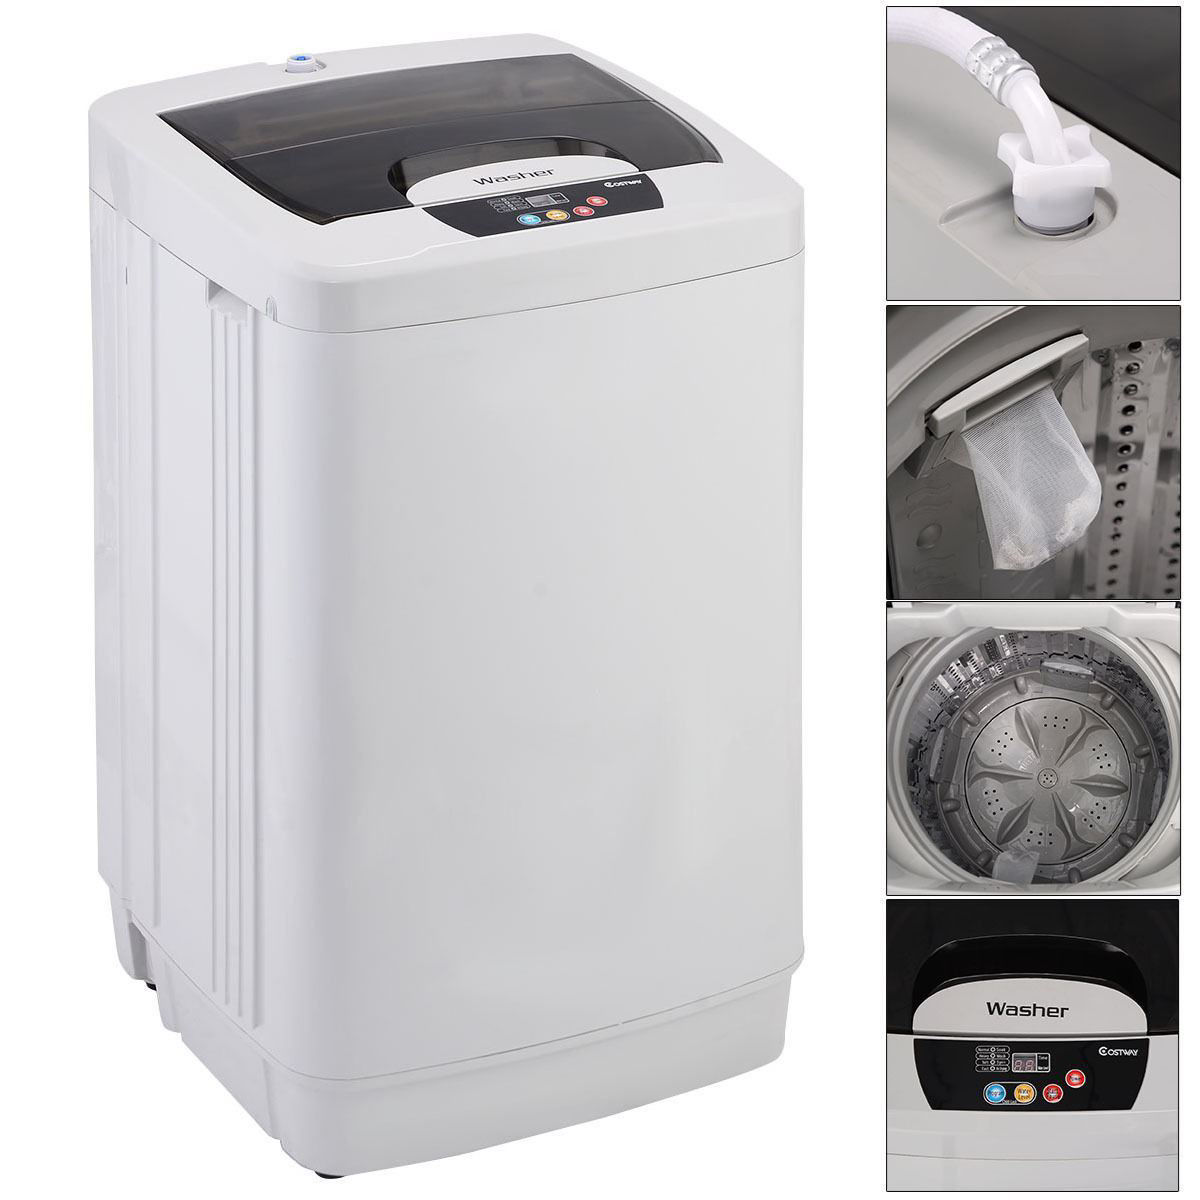 Picture of Portable Small Washing Machine Washer Fully Automatic 1.87 Cu.ft / 12 lbs Spin